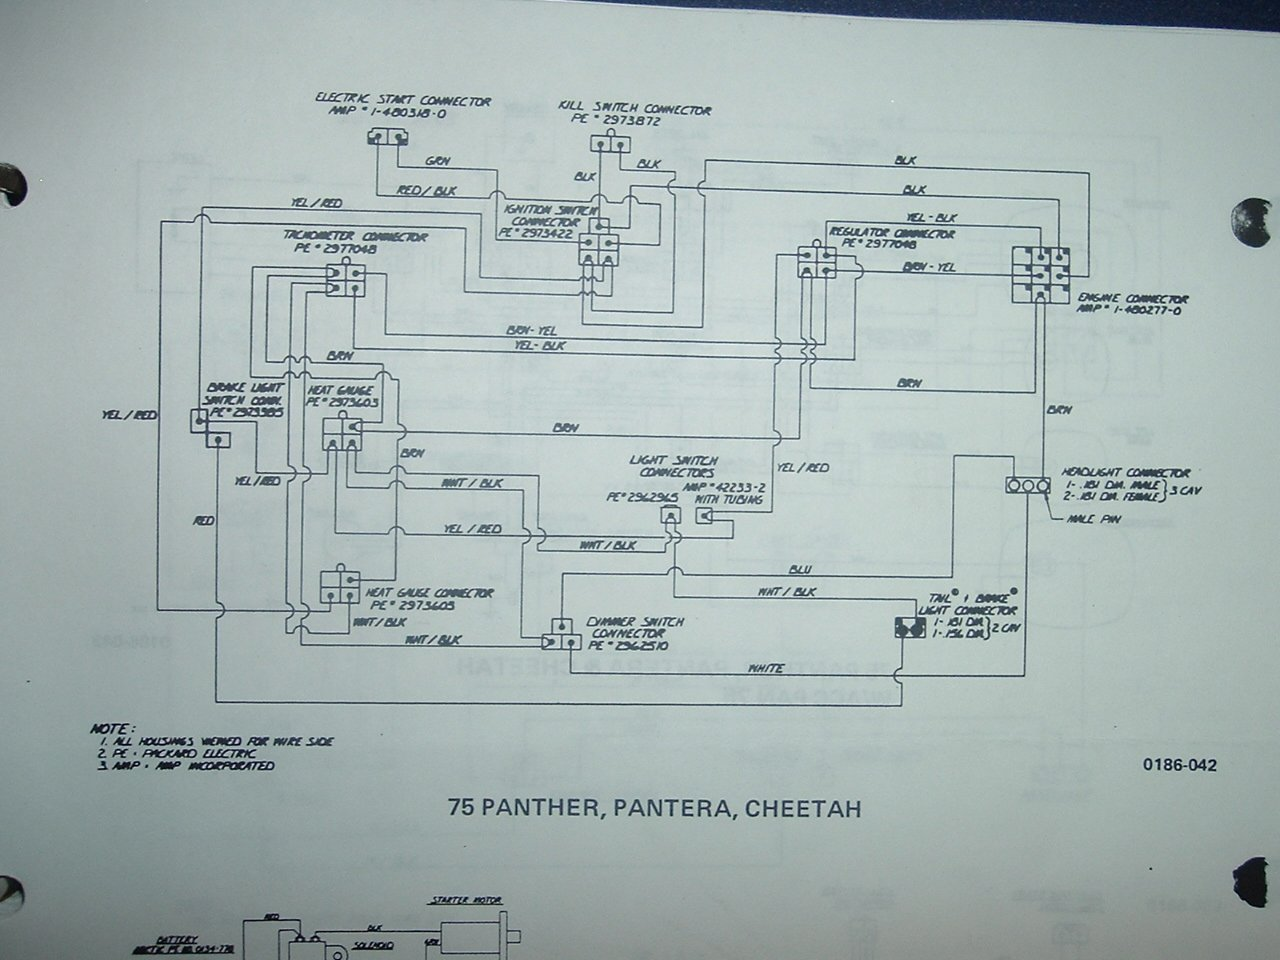 92 700 wildcat wiring diagram wiring diagram for you • 1992 wildcat 700 wiring diagram database of wiring library t250 bobcat wiring diagram arctic cat 250